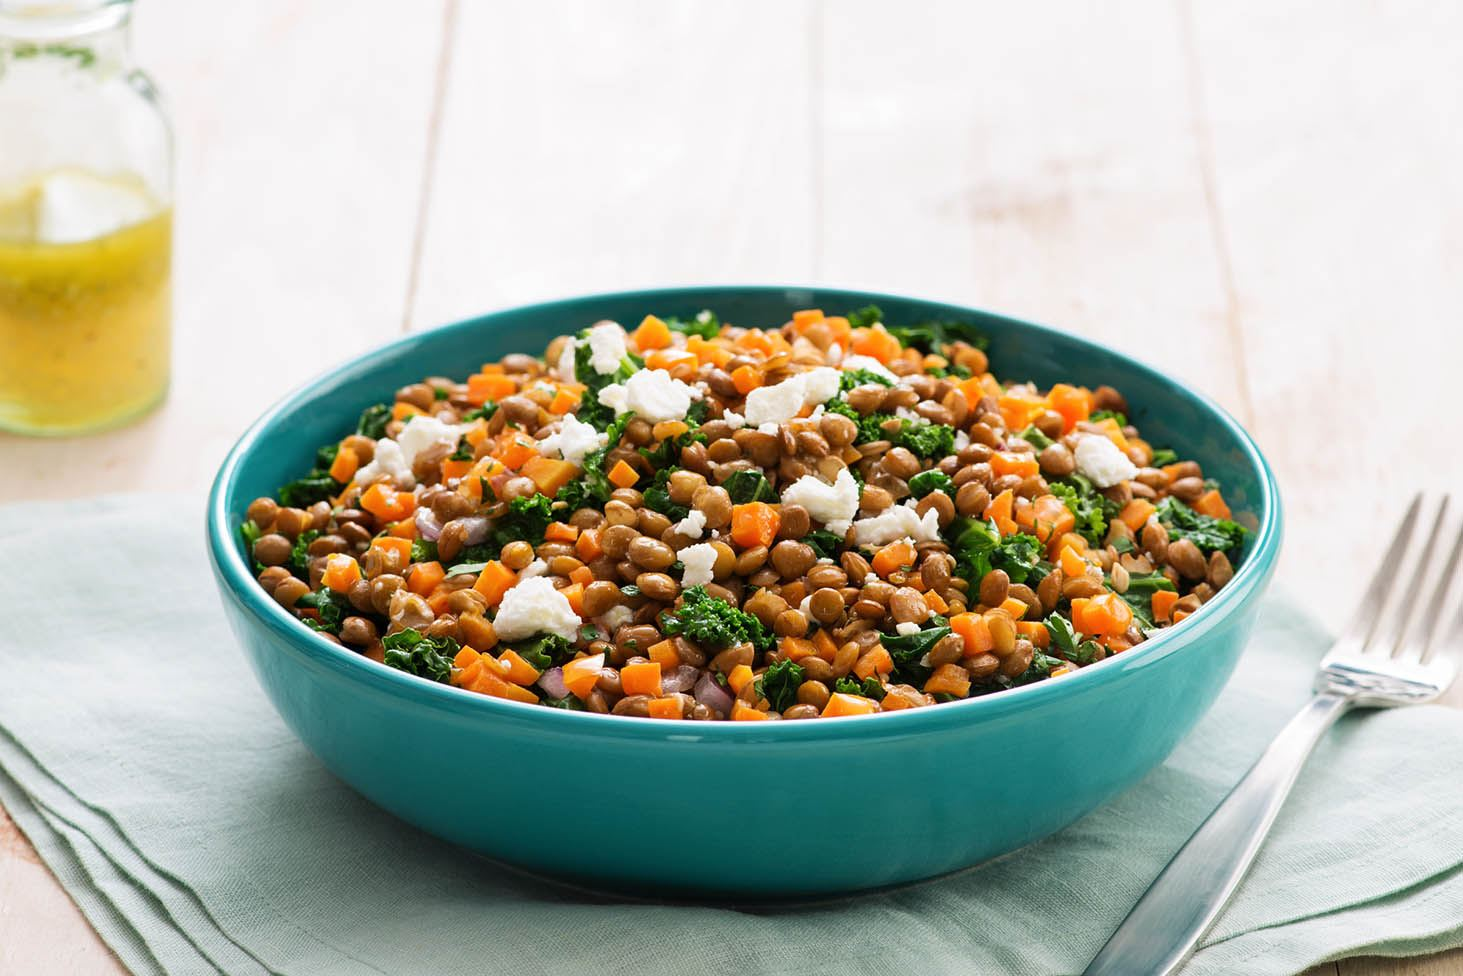 Kale and Lentil Salad with Goat Cheese